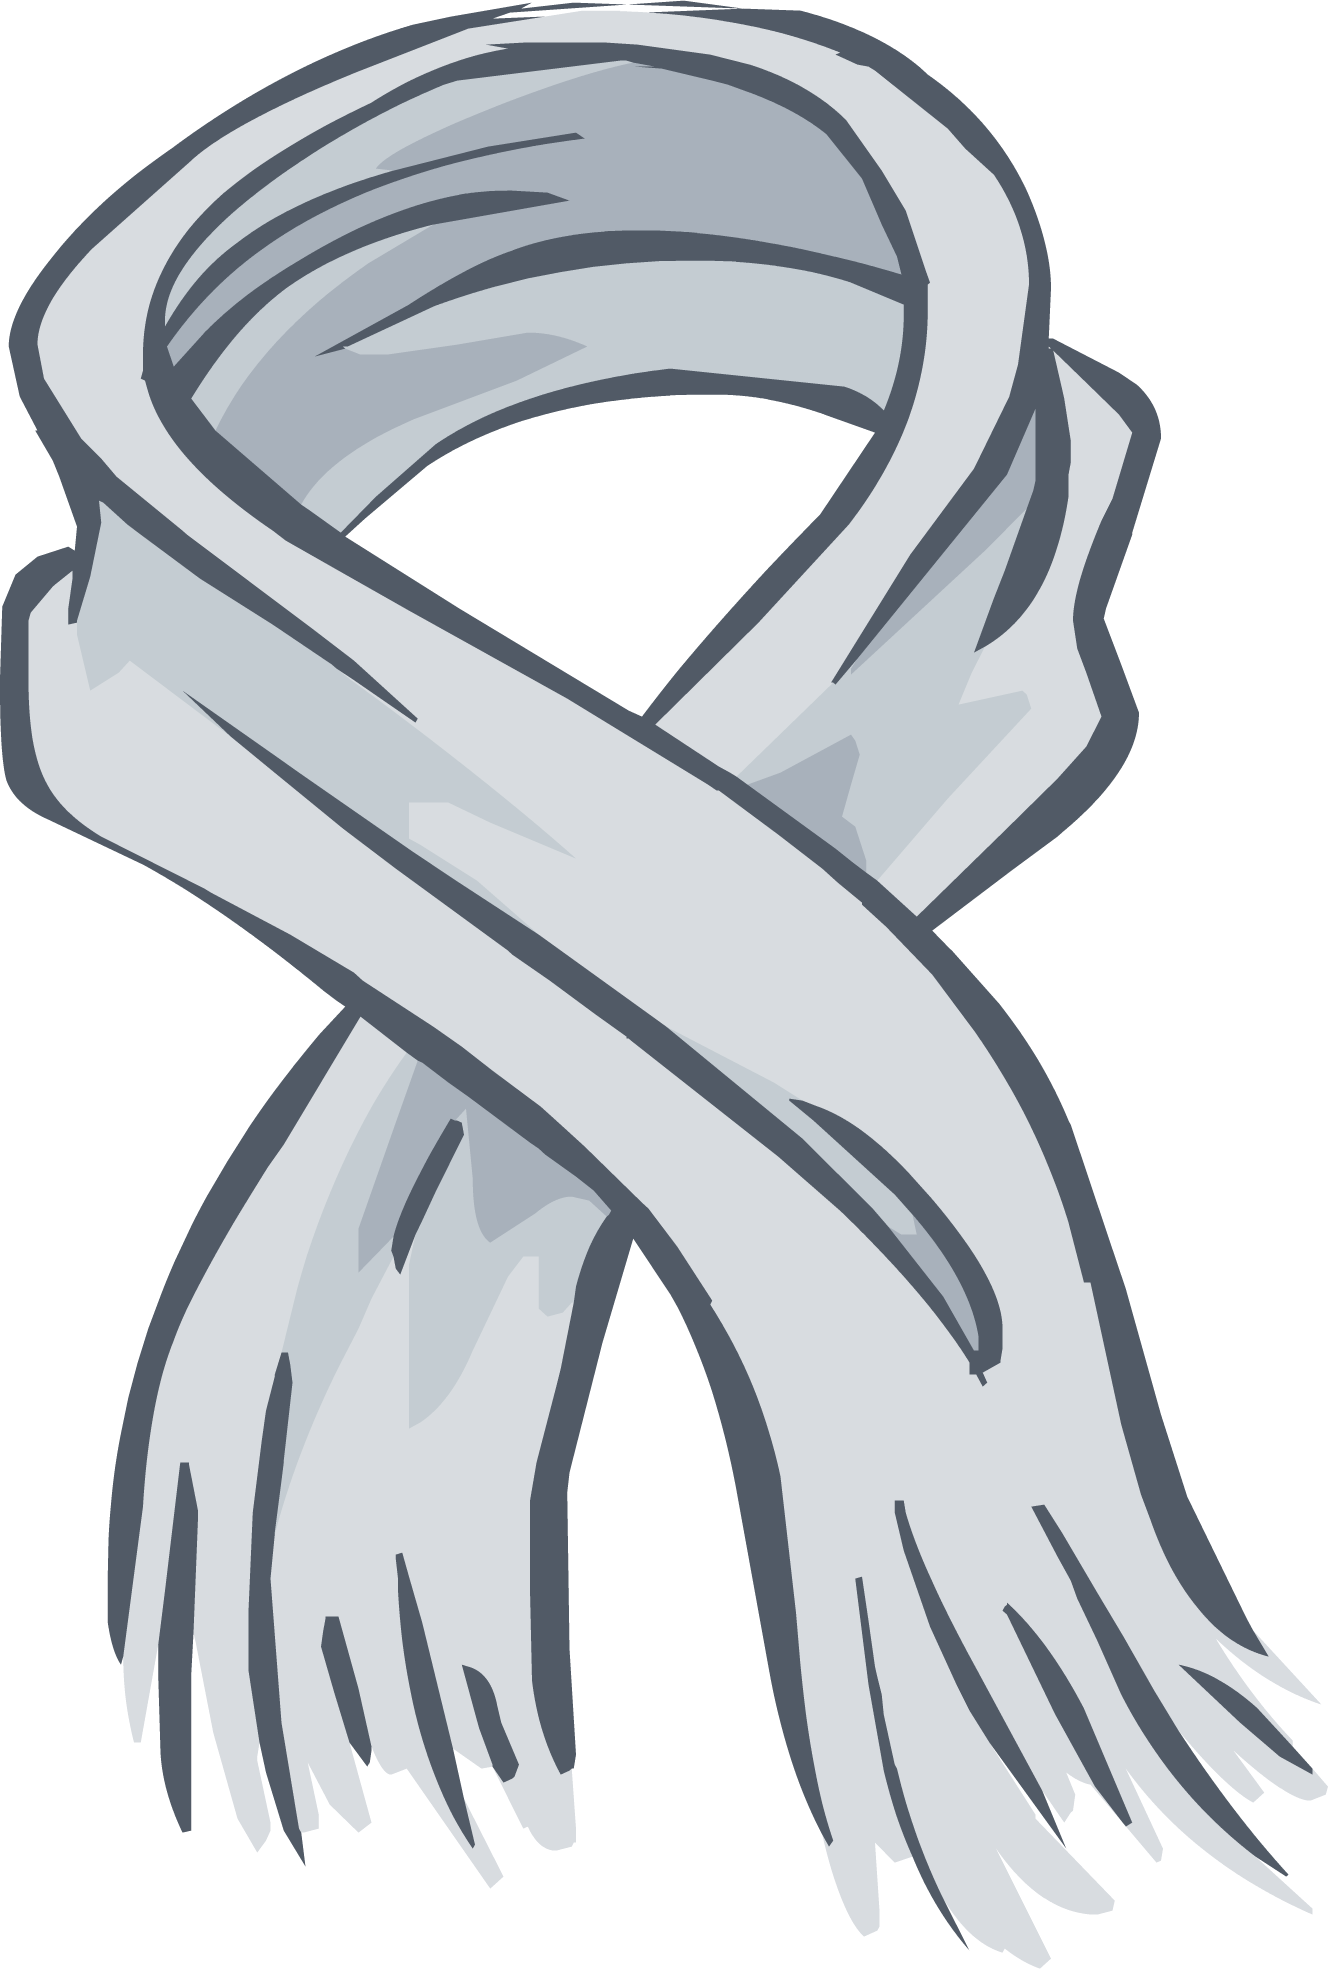 Drawing scarf muffler. Png images free download